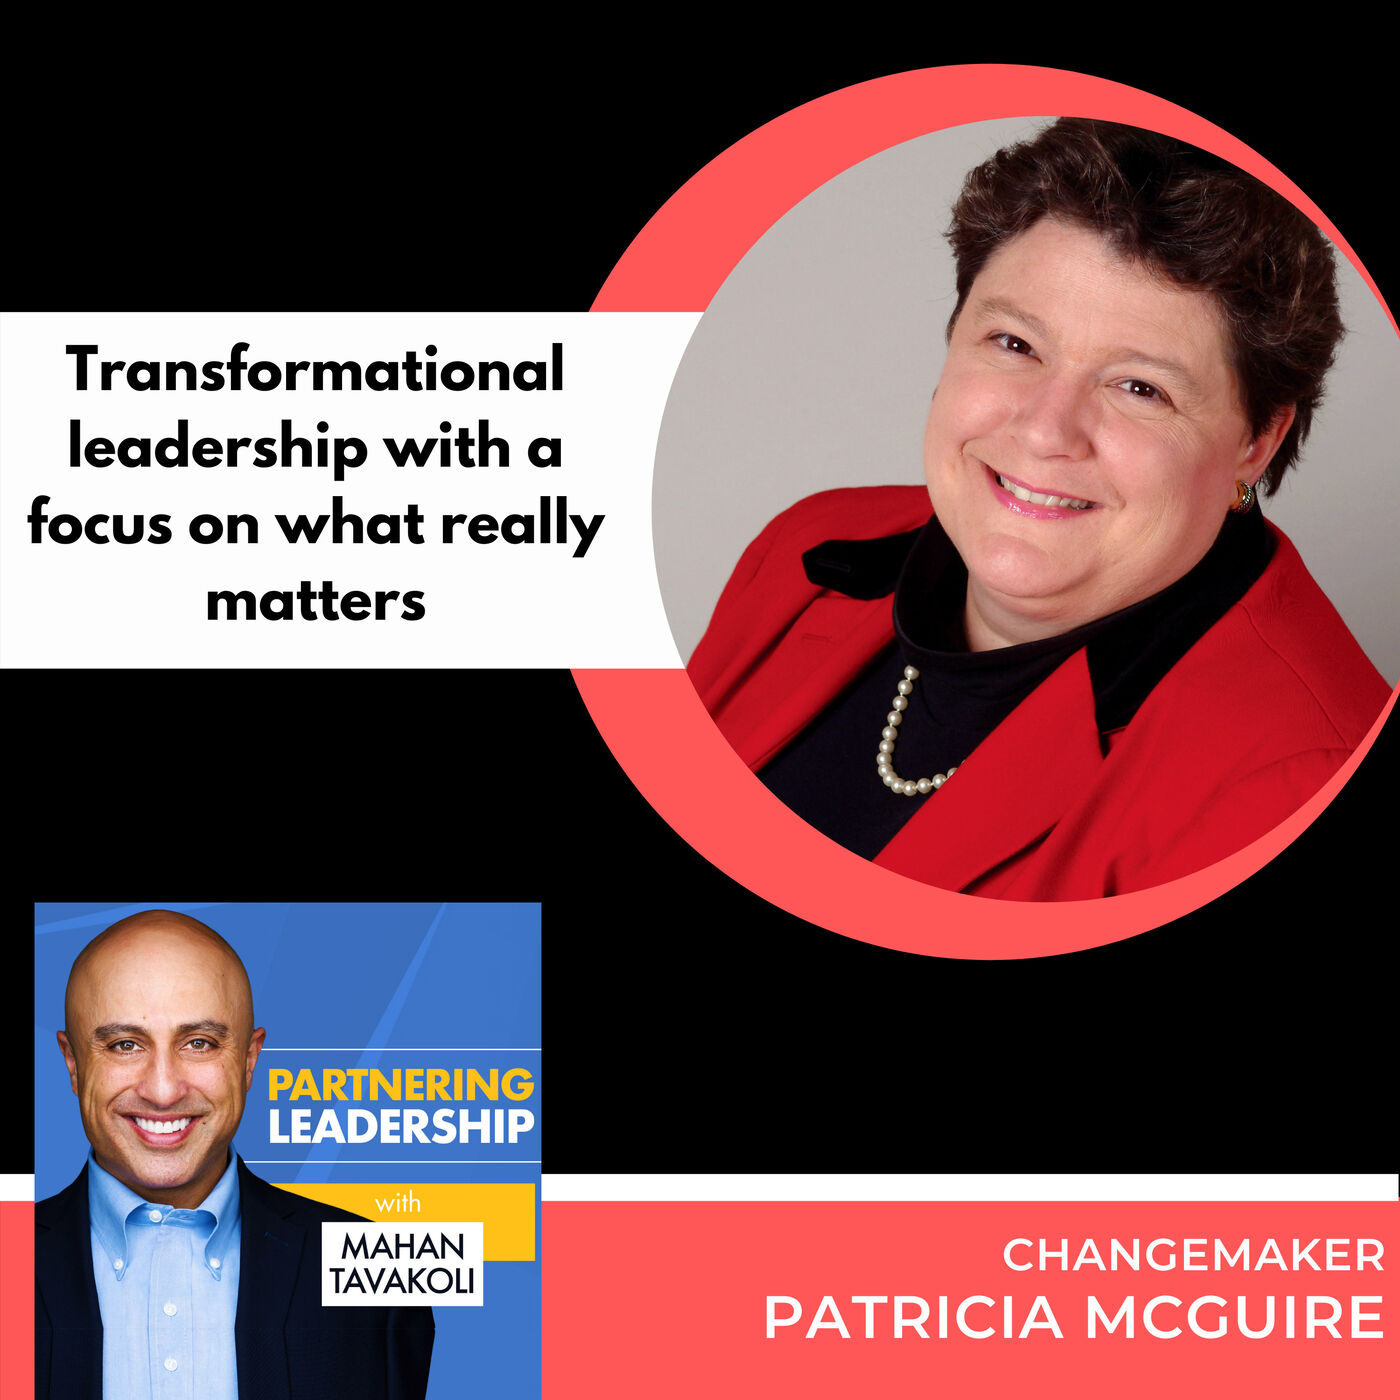 Transformational leadership with a focus on what really matters with Patricia McGuire | Changemaker